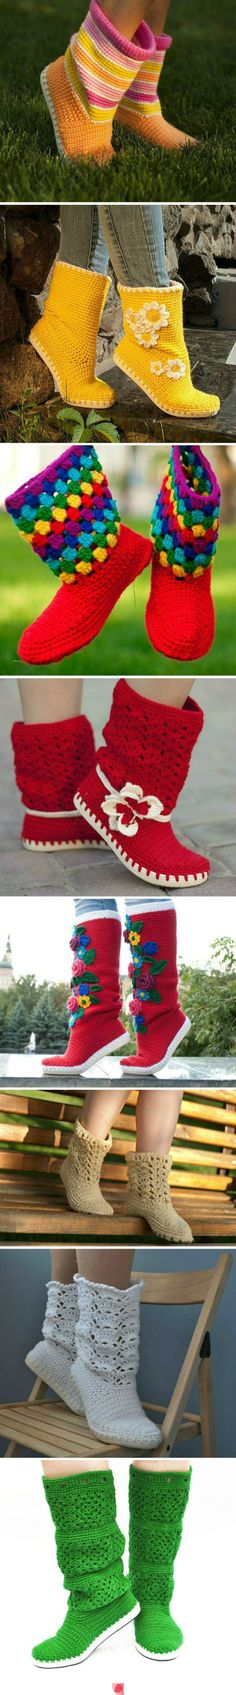 boot slippers I want to make